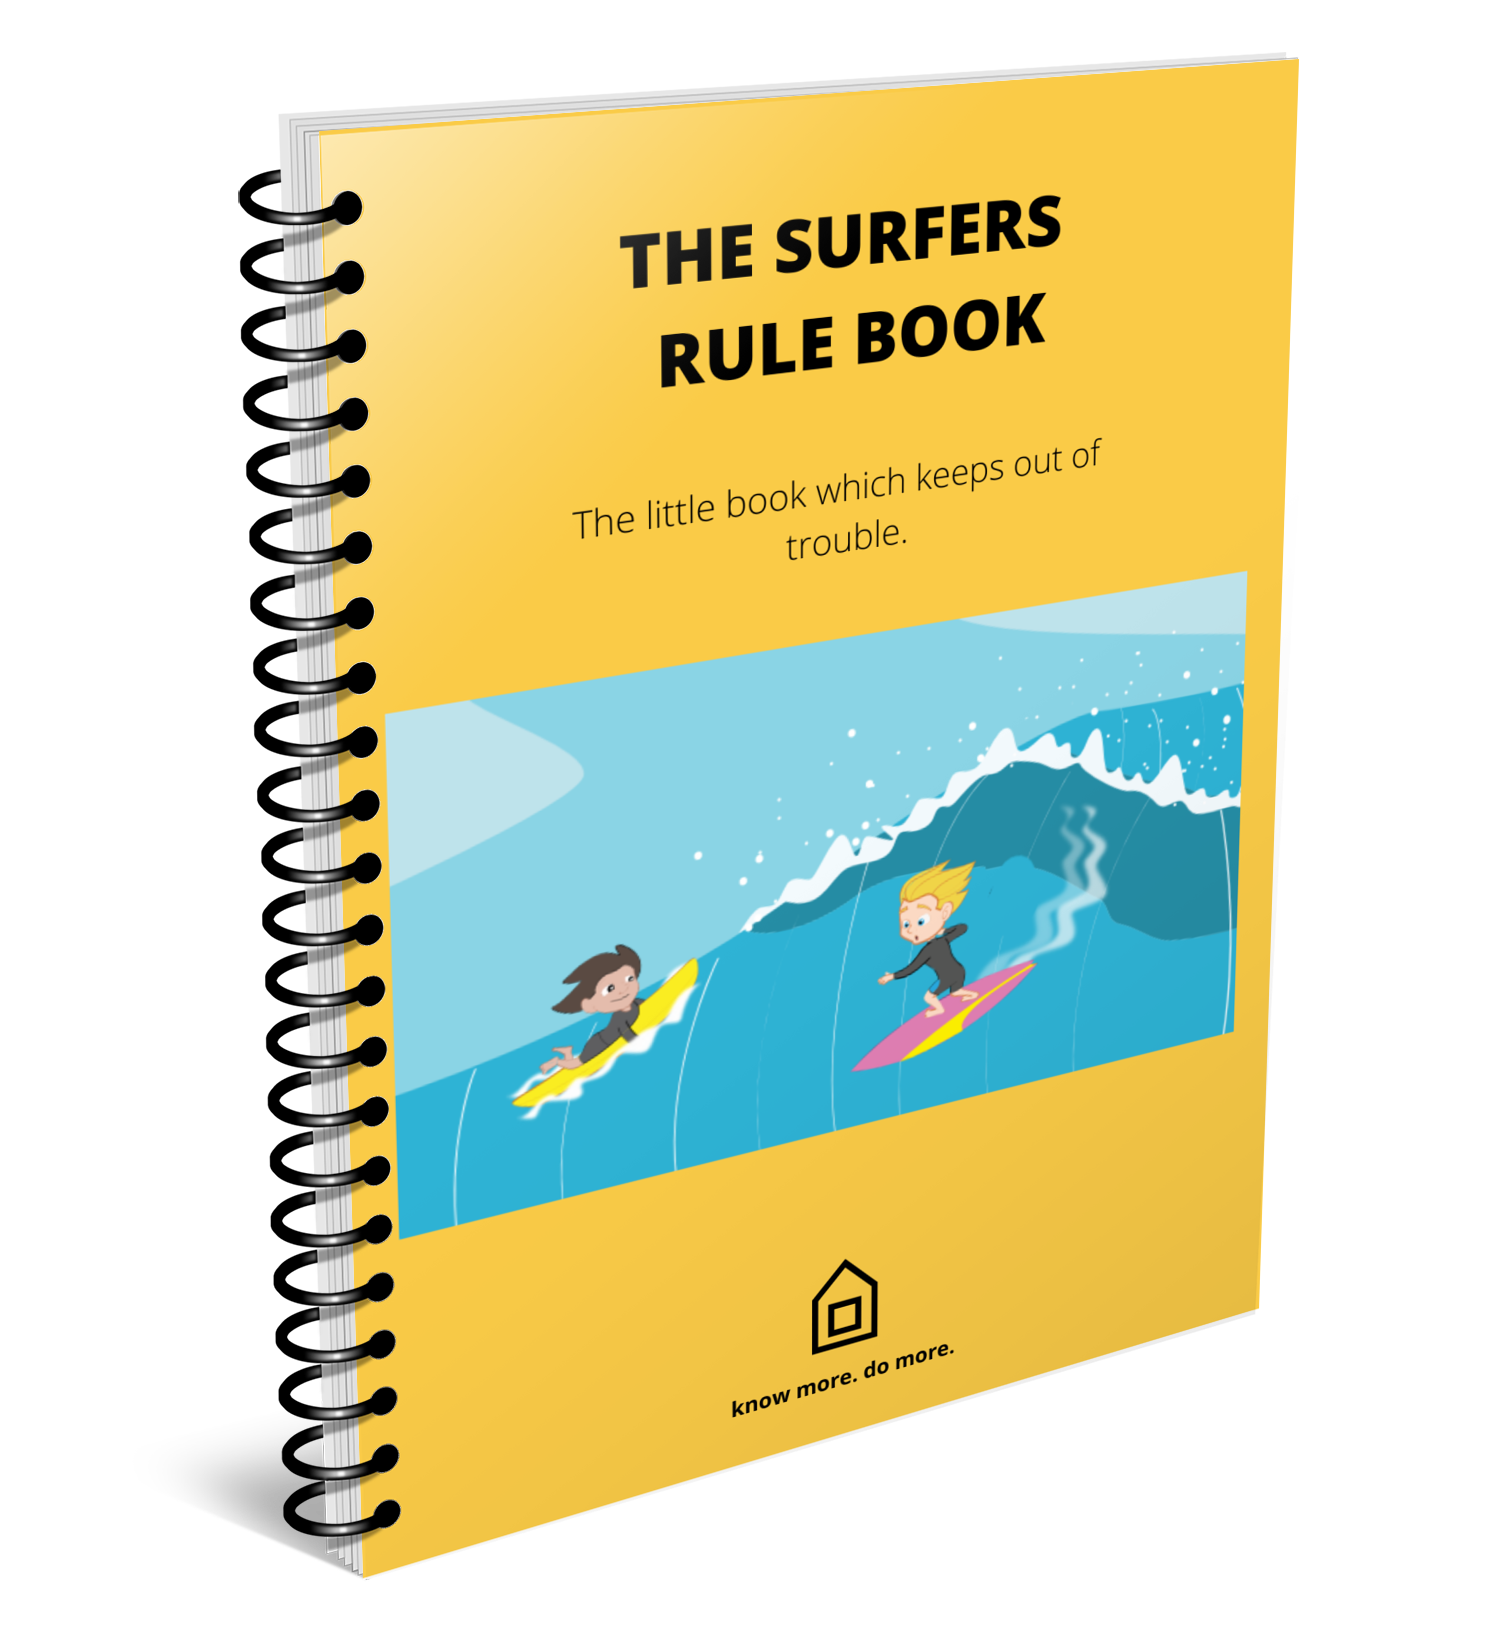 The Surfers Rule Book